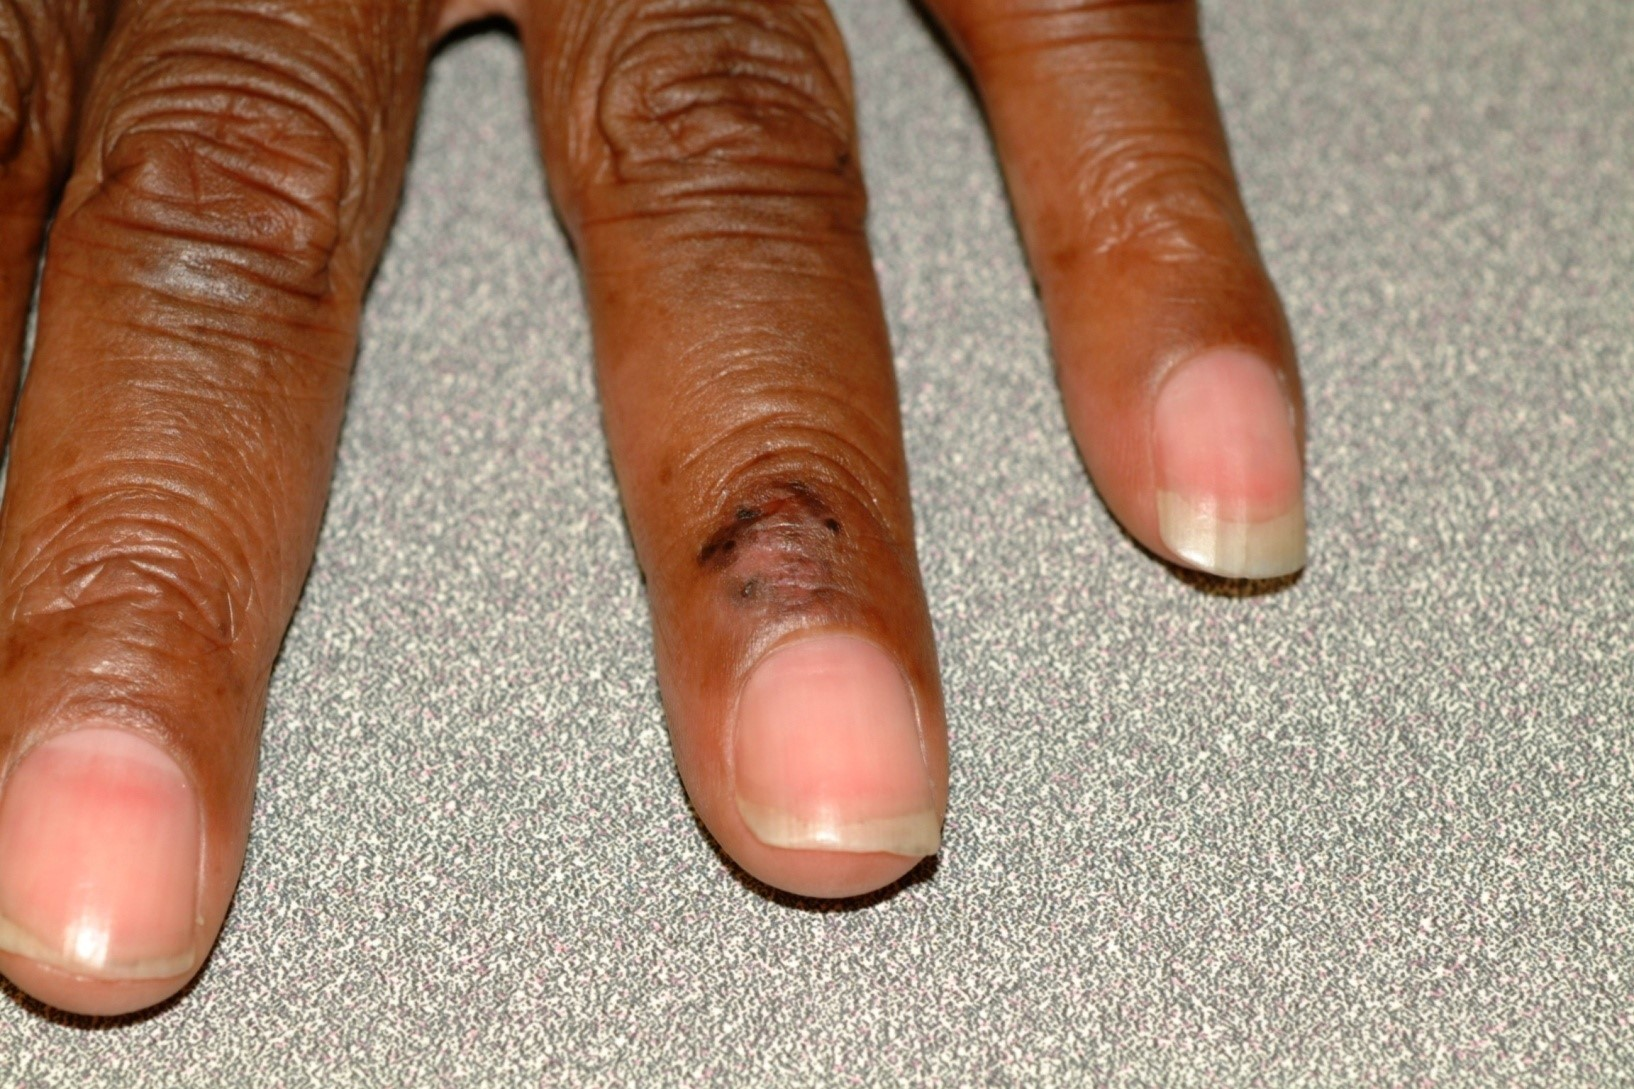 Squamous cell carcinoma in a black person